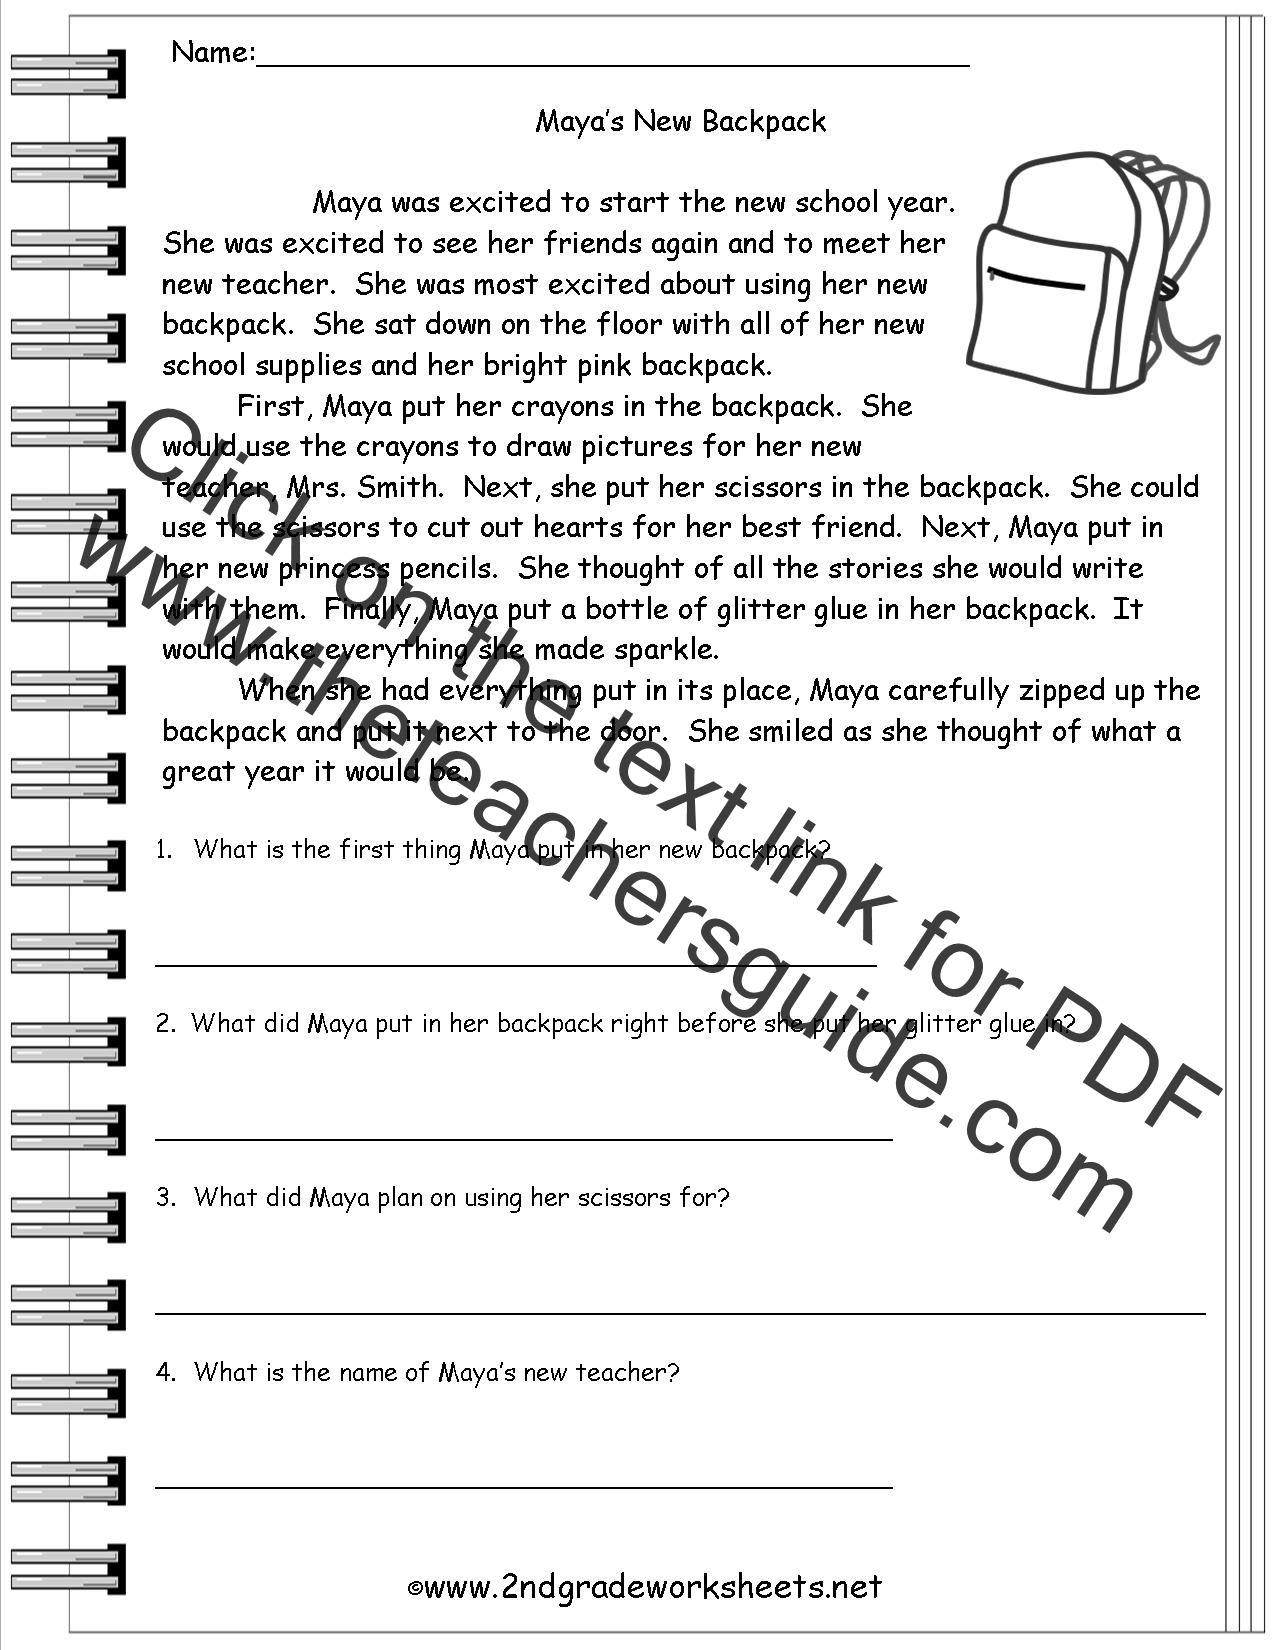 Worksheets Main Idea Worksheets 2nd Grade Free reading worksheeets literature worksheets common core state standards 2